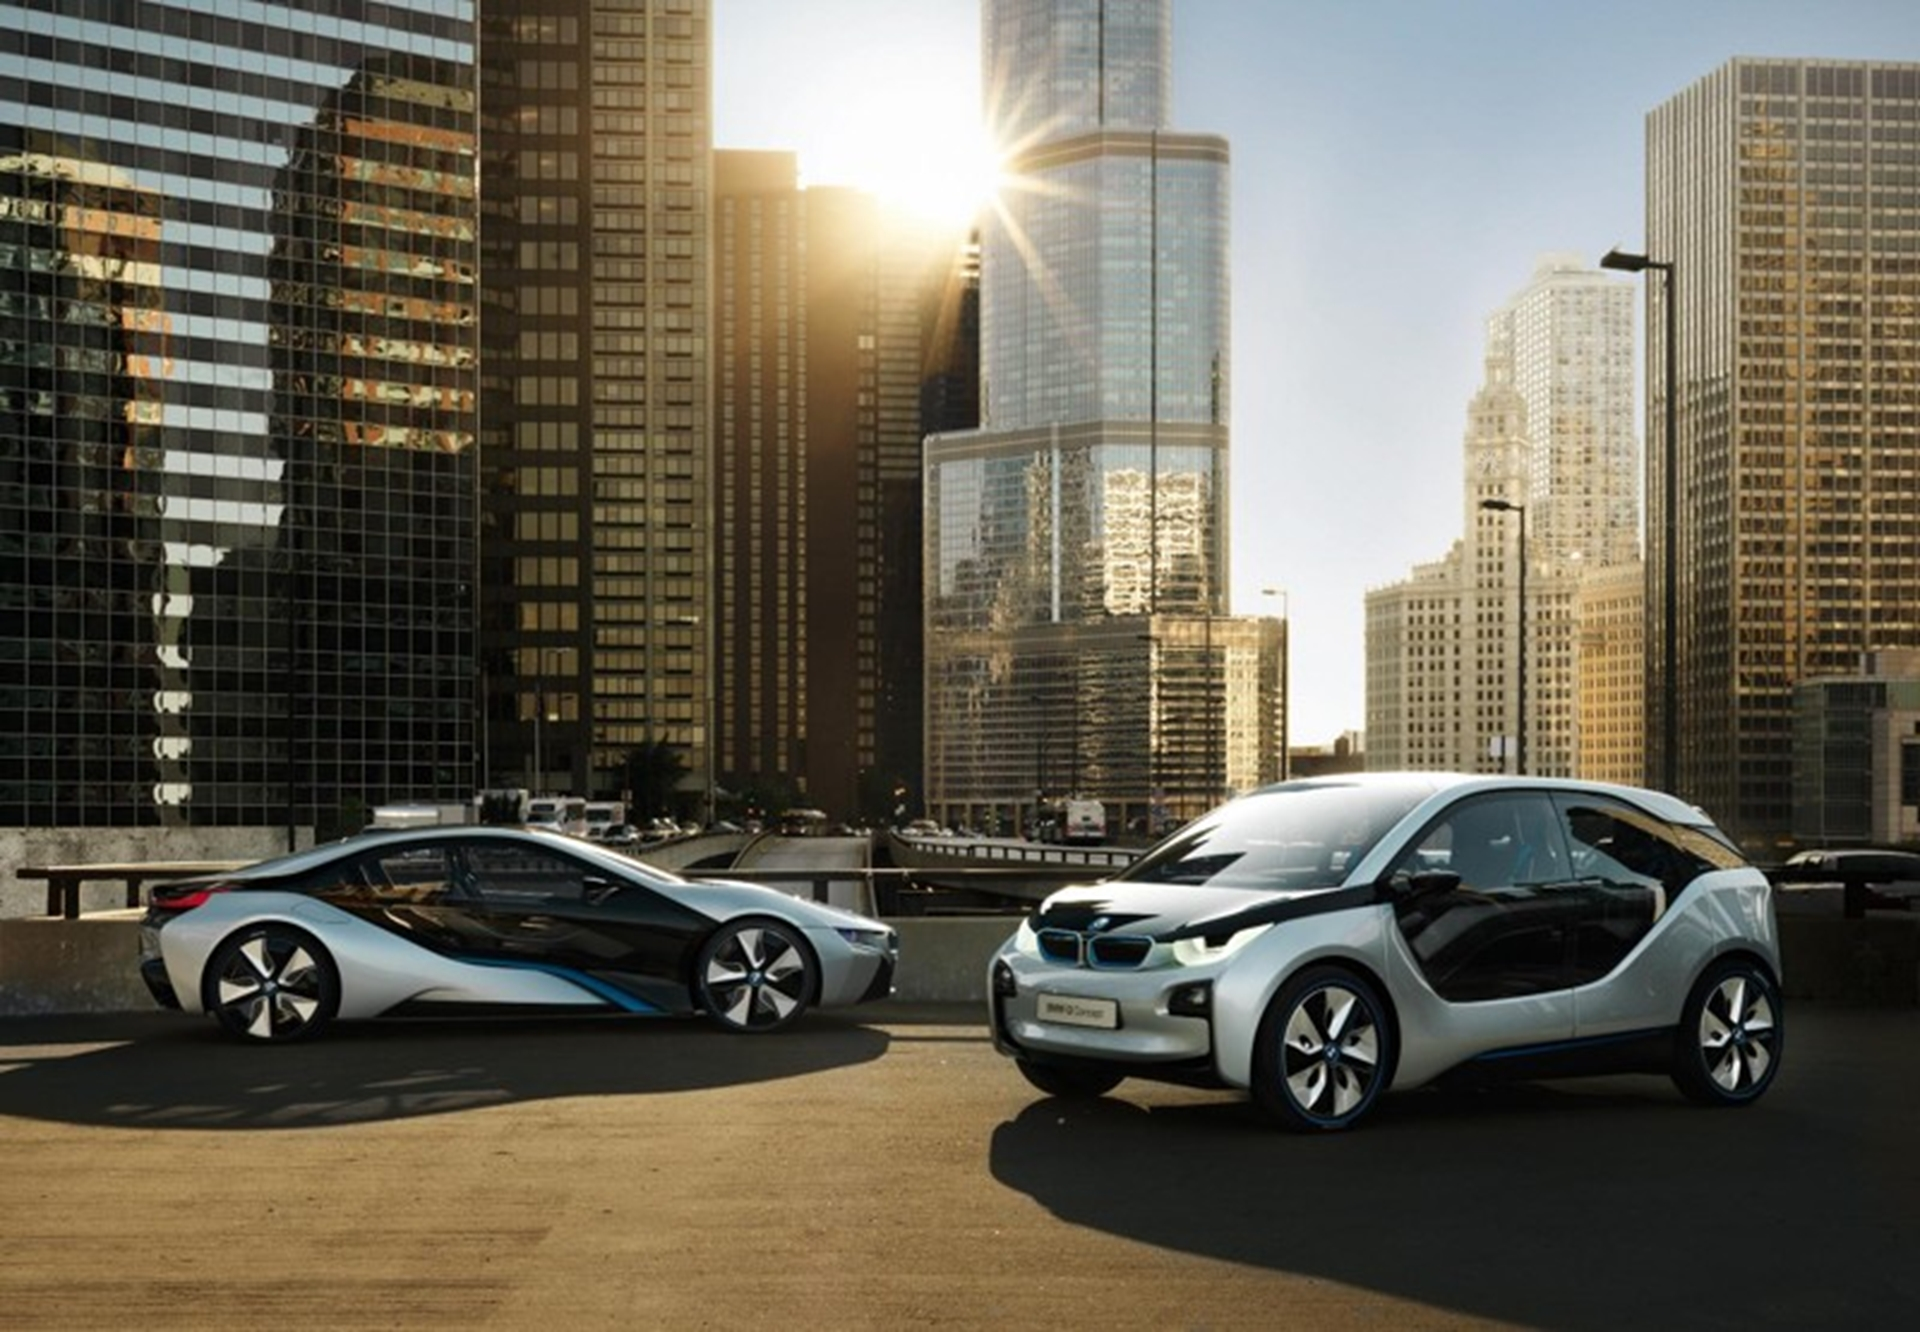 BMW I Is A Synonym For Visionary Vehicles And Mobility Services,  Inspirational Design And For A New Interpretation Of The Premium Concept,  Strongly Defined ...